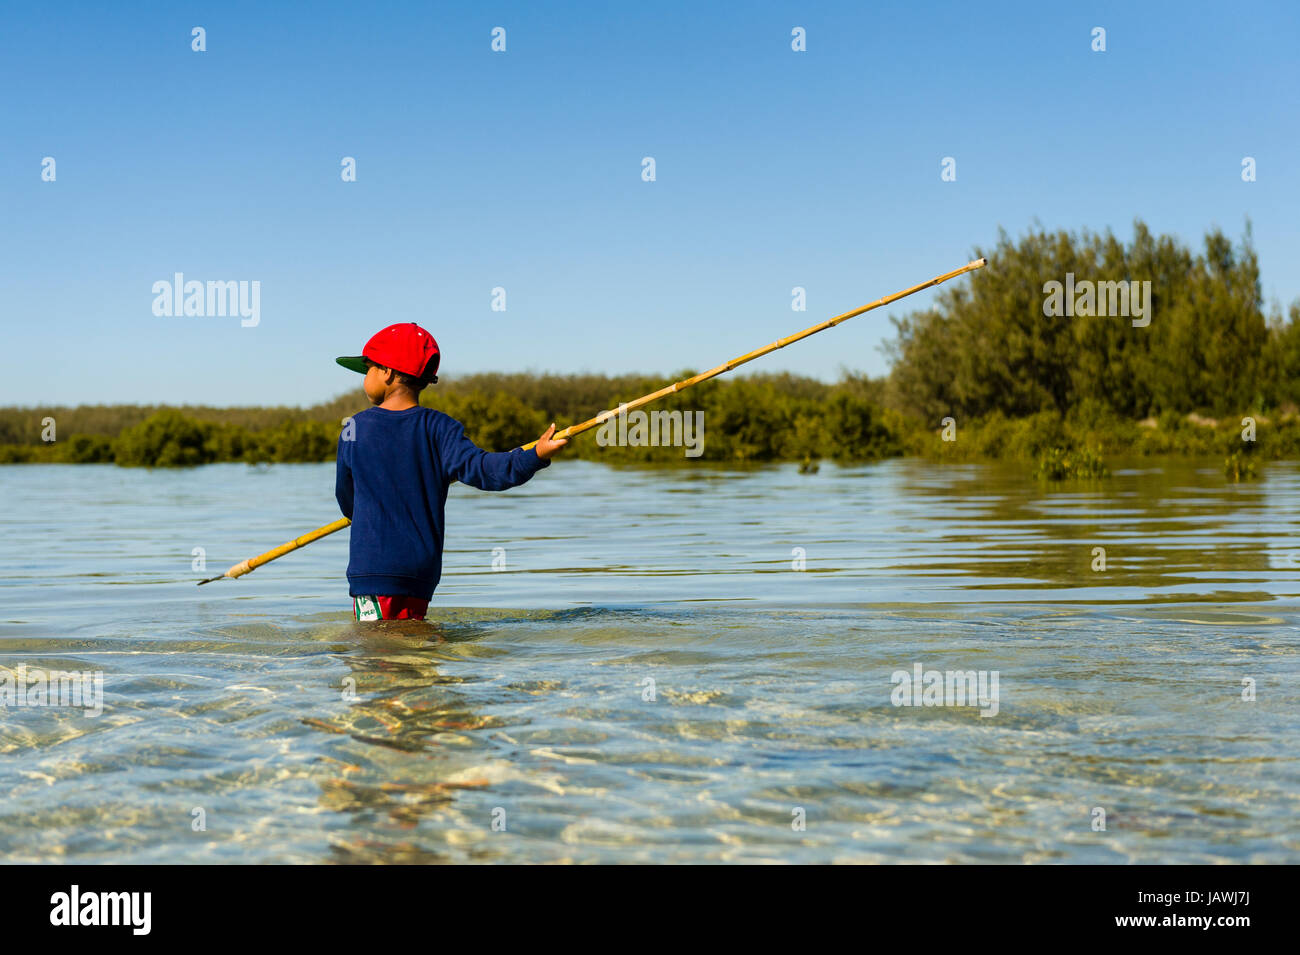 An Aboriginal boy uses a long barbed spear to hunt for stingrays in the shallows of a lagoon. - Stock Image